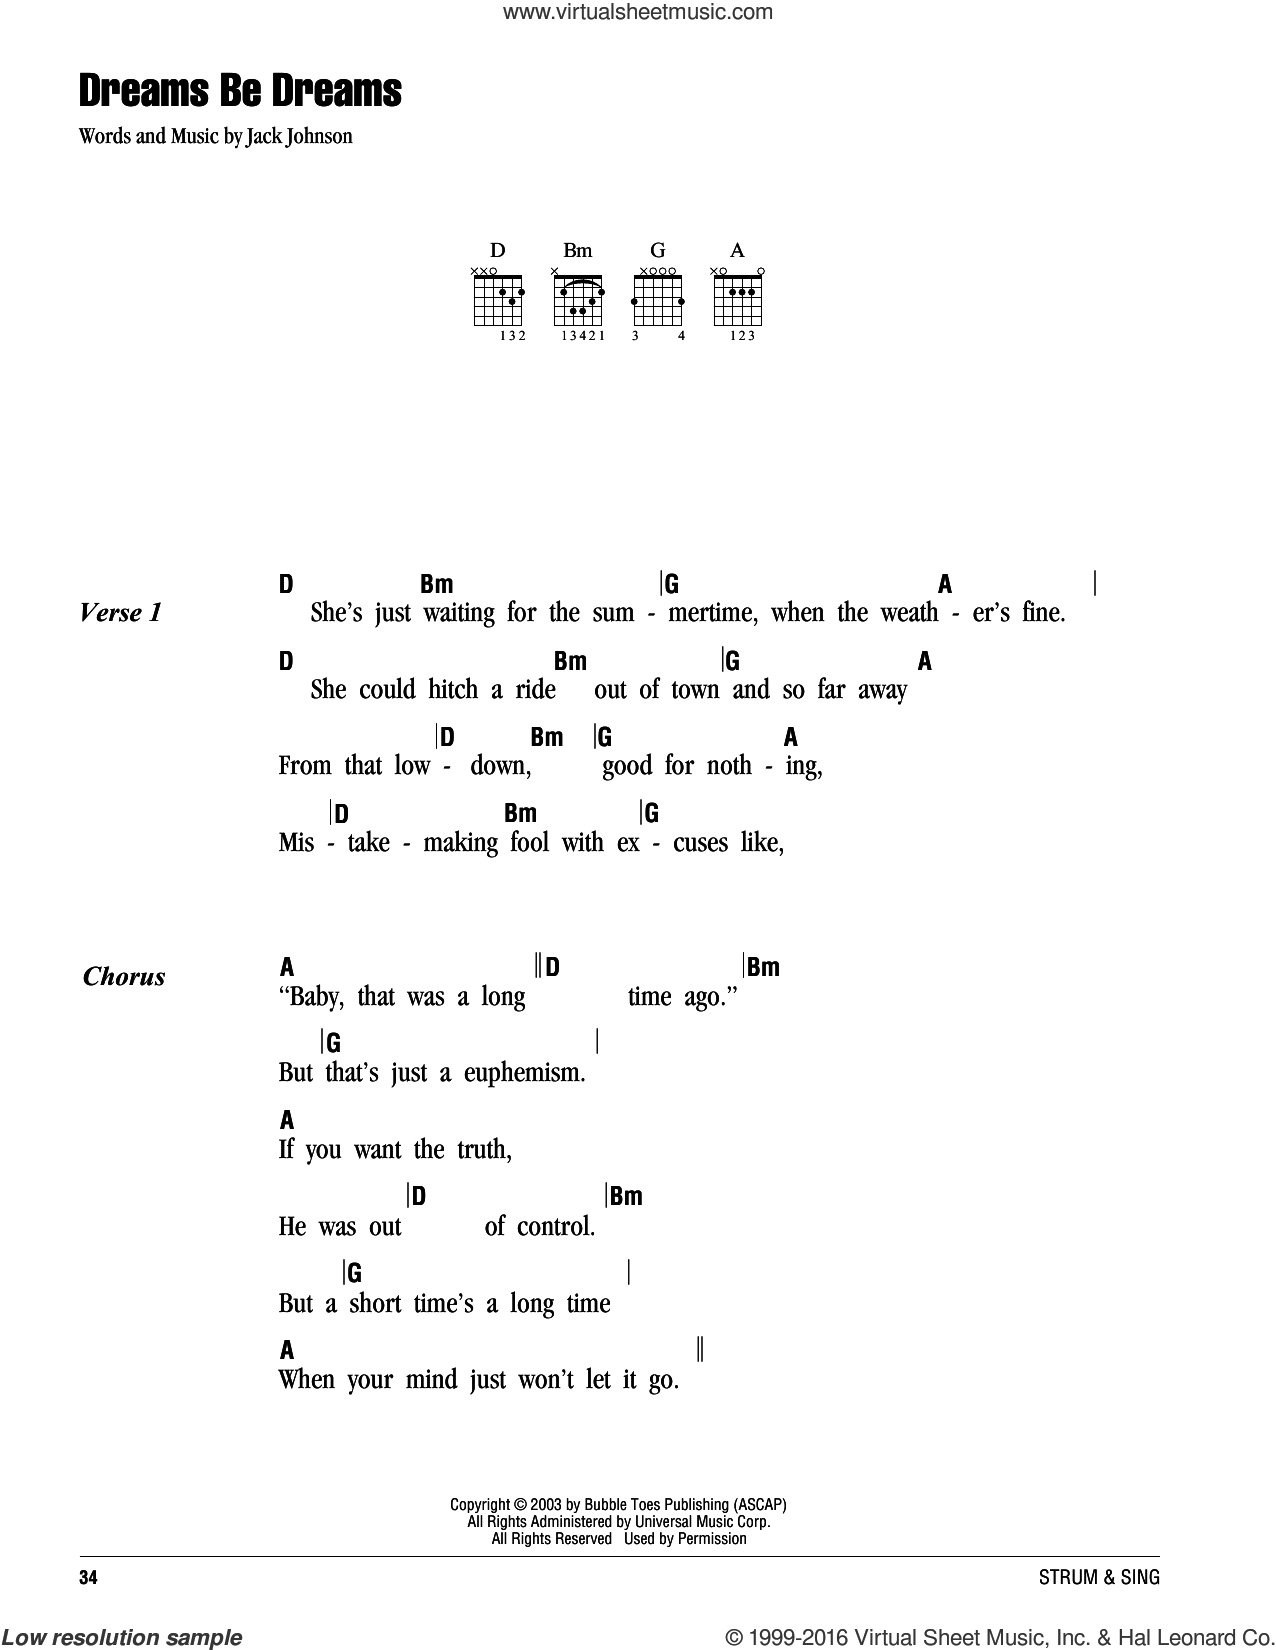 Dreams Be Dreams sheet music for guitar (chords) by Jack Johnson. Score Image Preview.